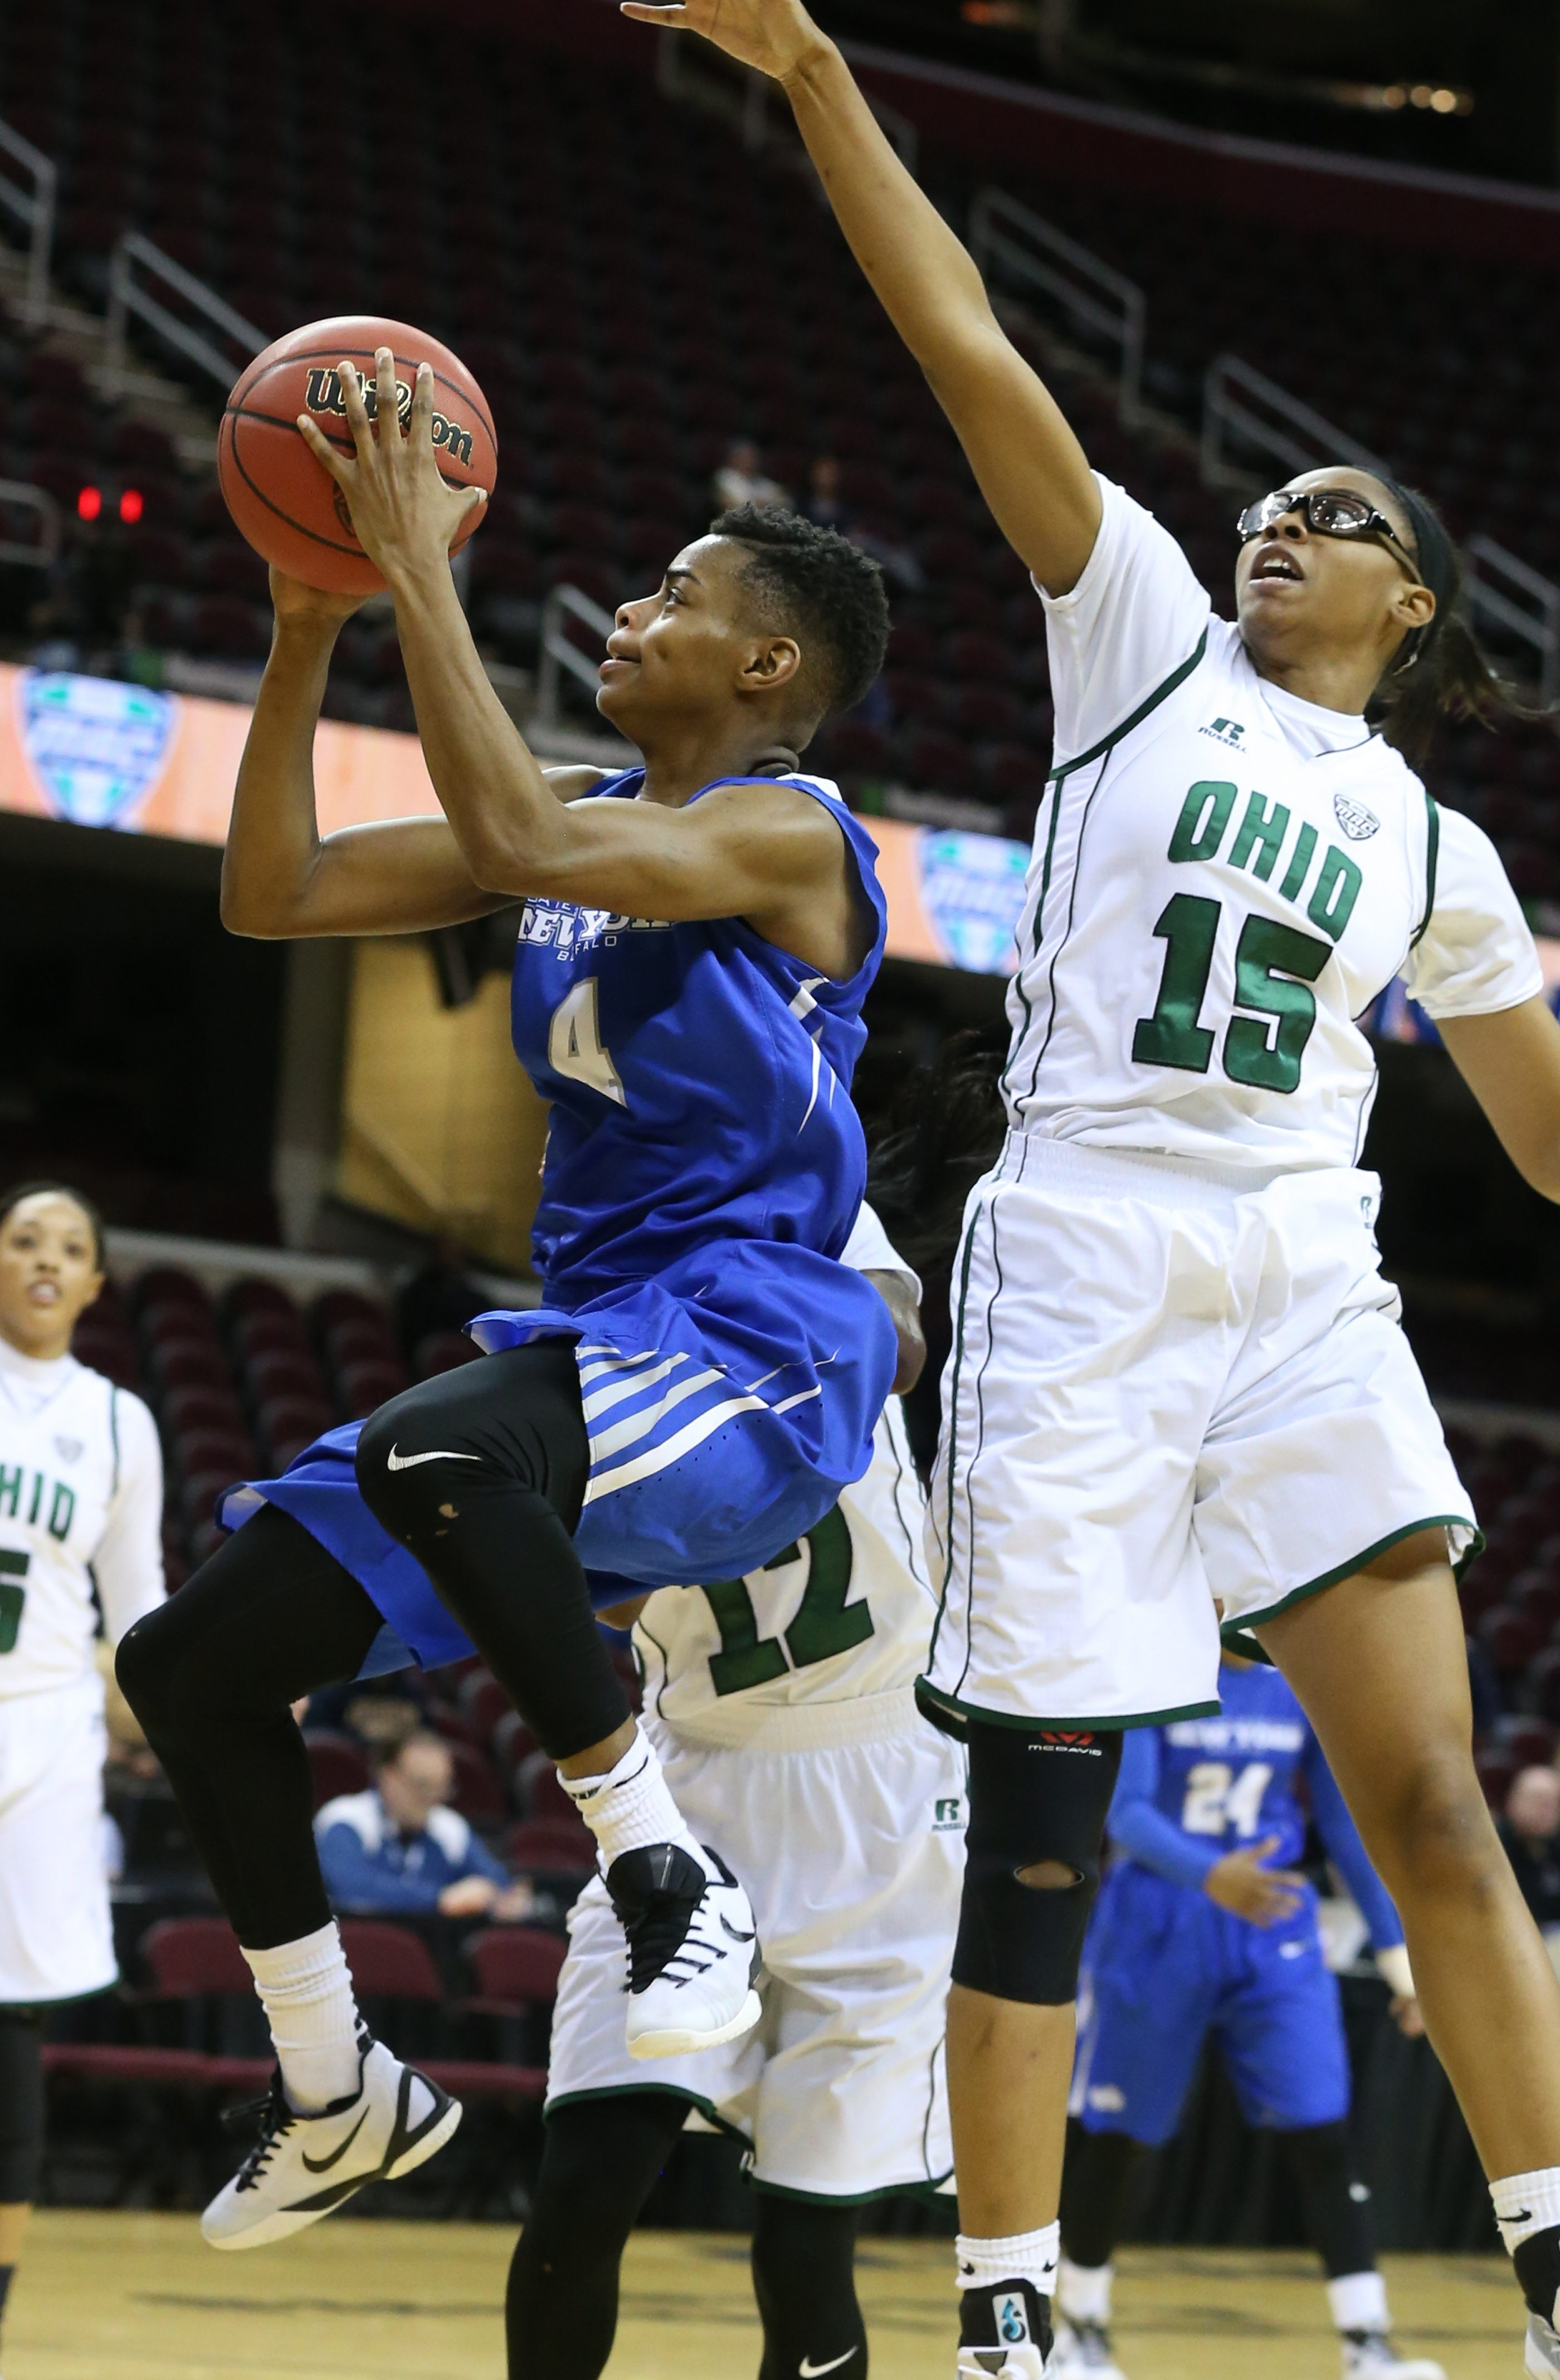 UB's Joanna Smith had a team-high 19 points and 10 rebounds in the Bulls' win over Ohio in the MAC Tournament quarterfinals.